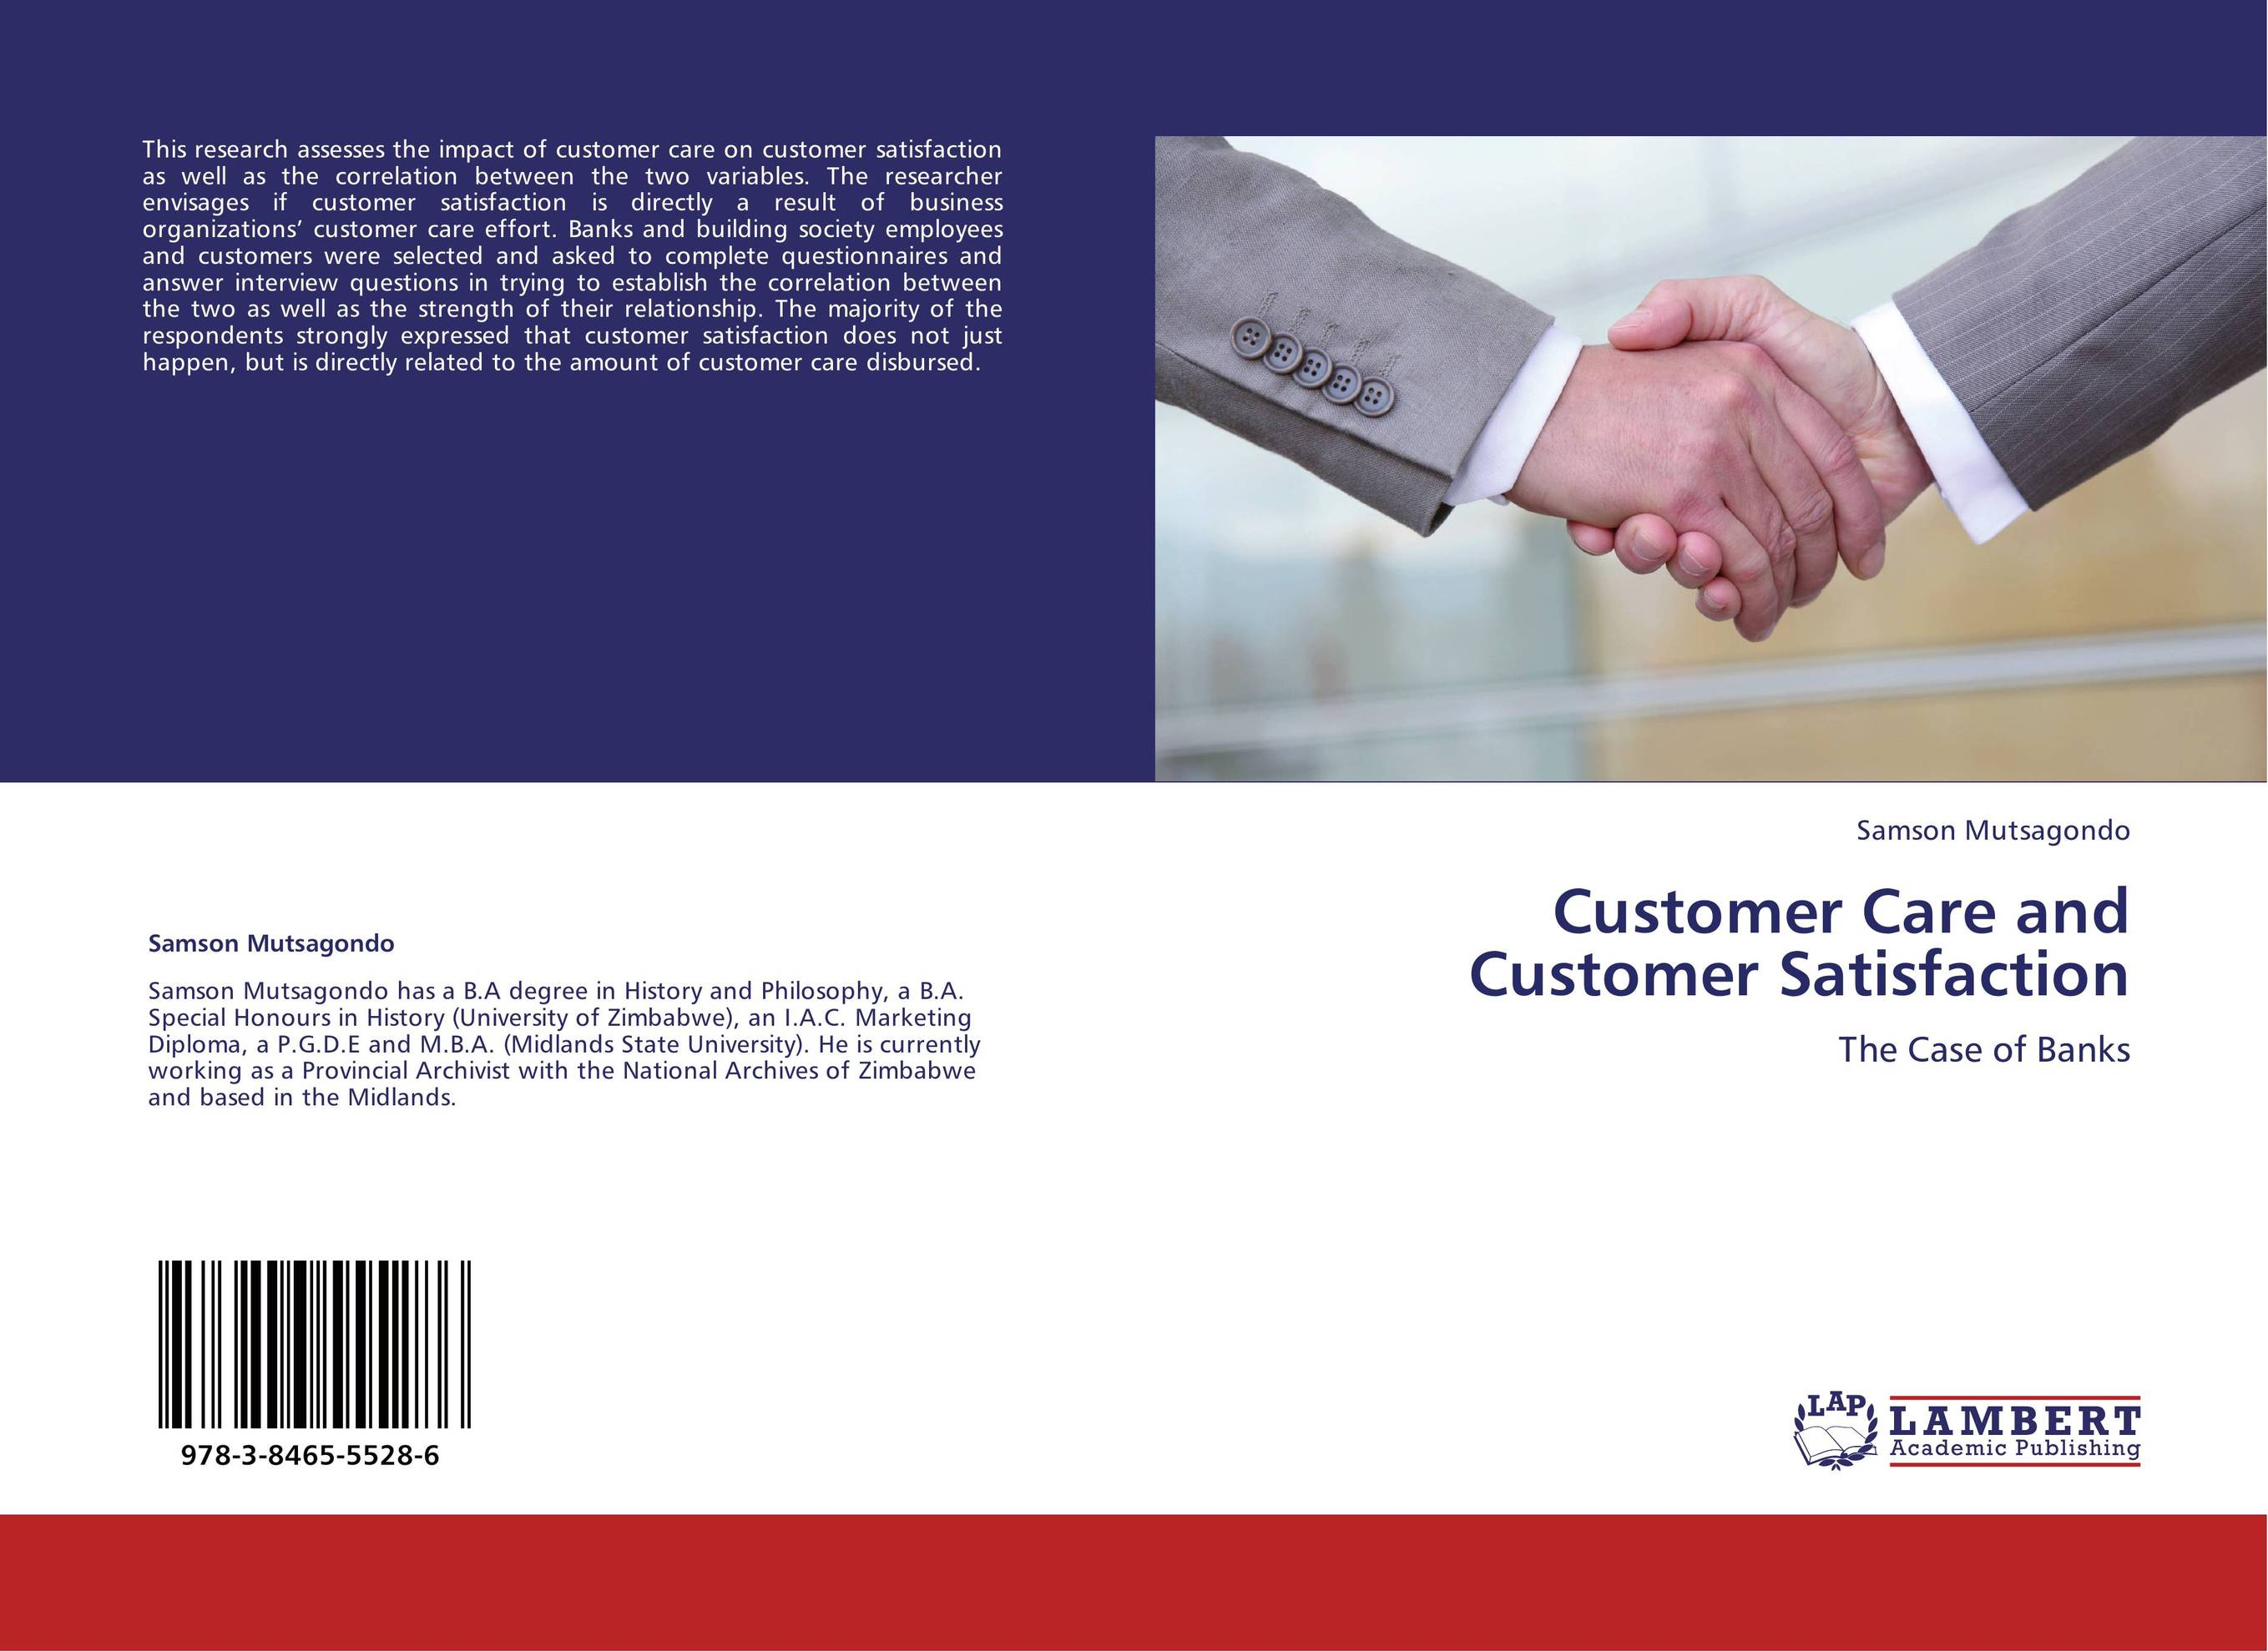 study of customer satisfaction for tata • to study and observe the expectation of customer in service quality • to identify the factors which influence the customer satisfaction level • to identify the feedback of the customer on the performance of the service of vst motor limited • to mark suggestions for promotional measures to increase the customer satisfaction vi.